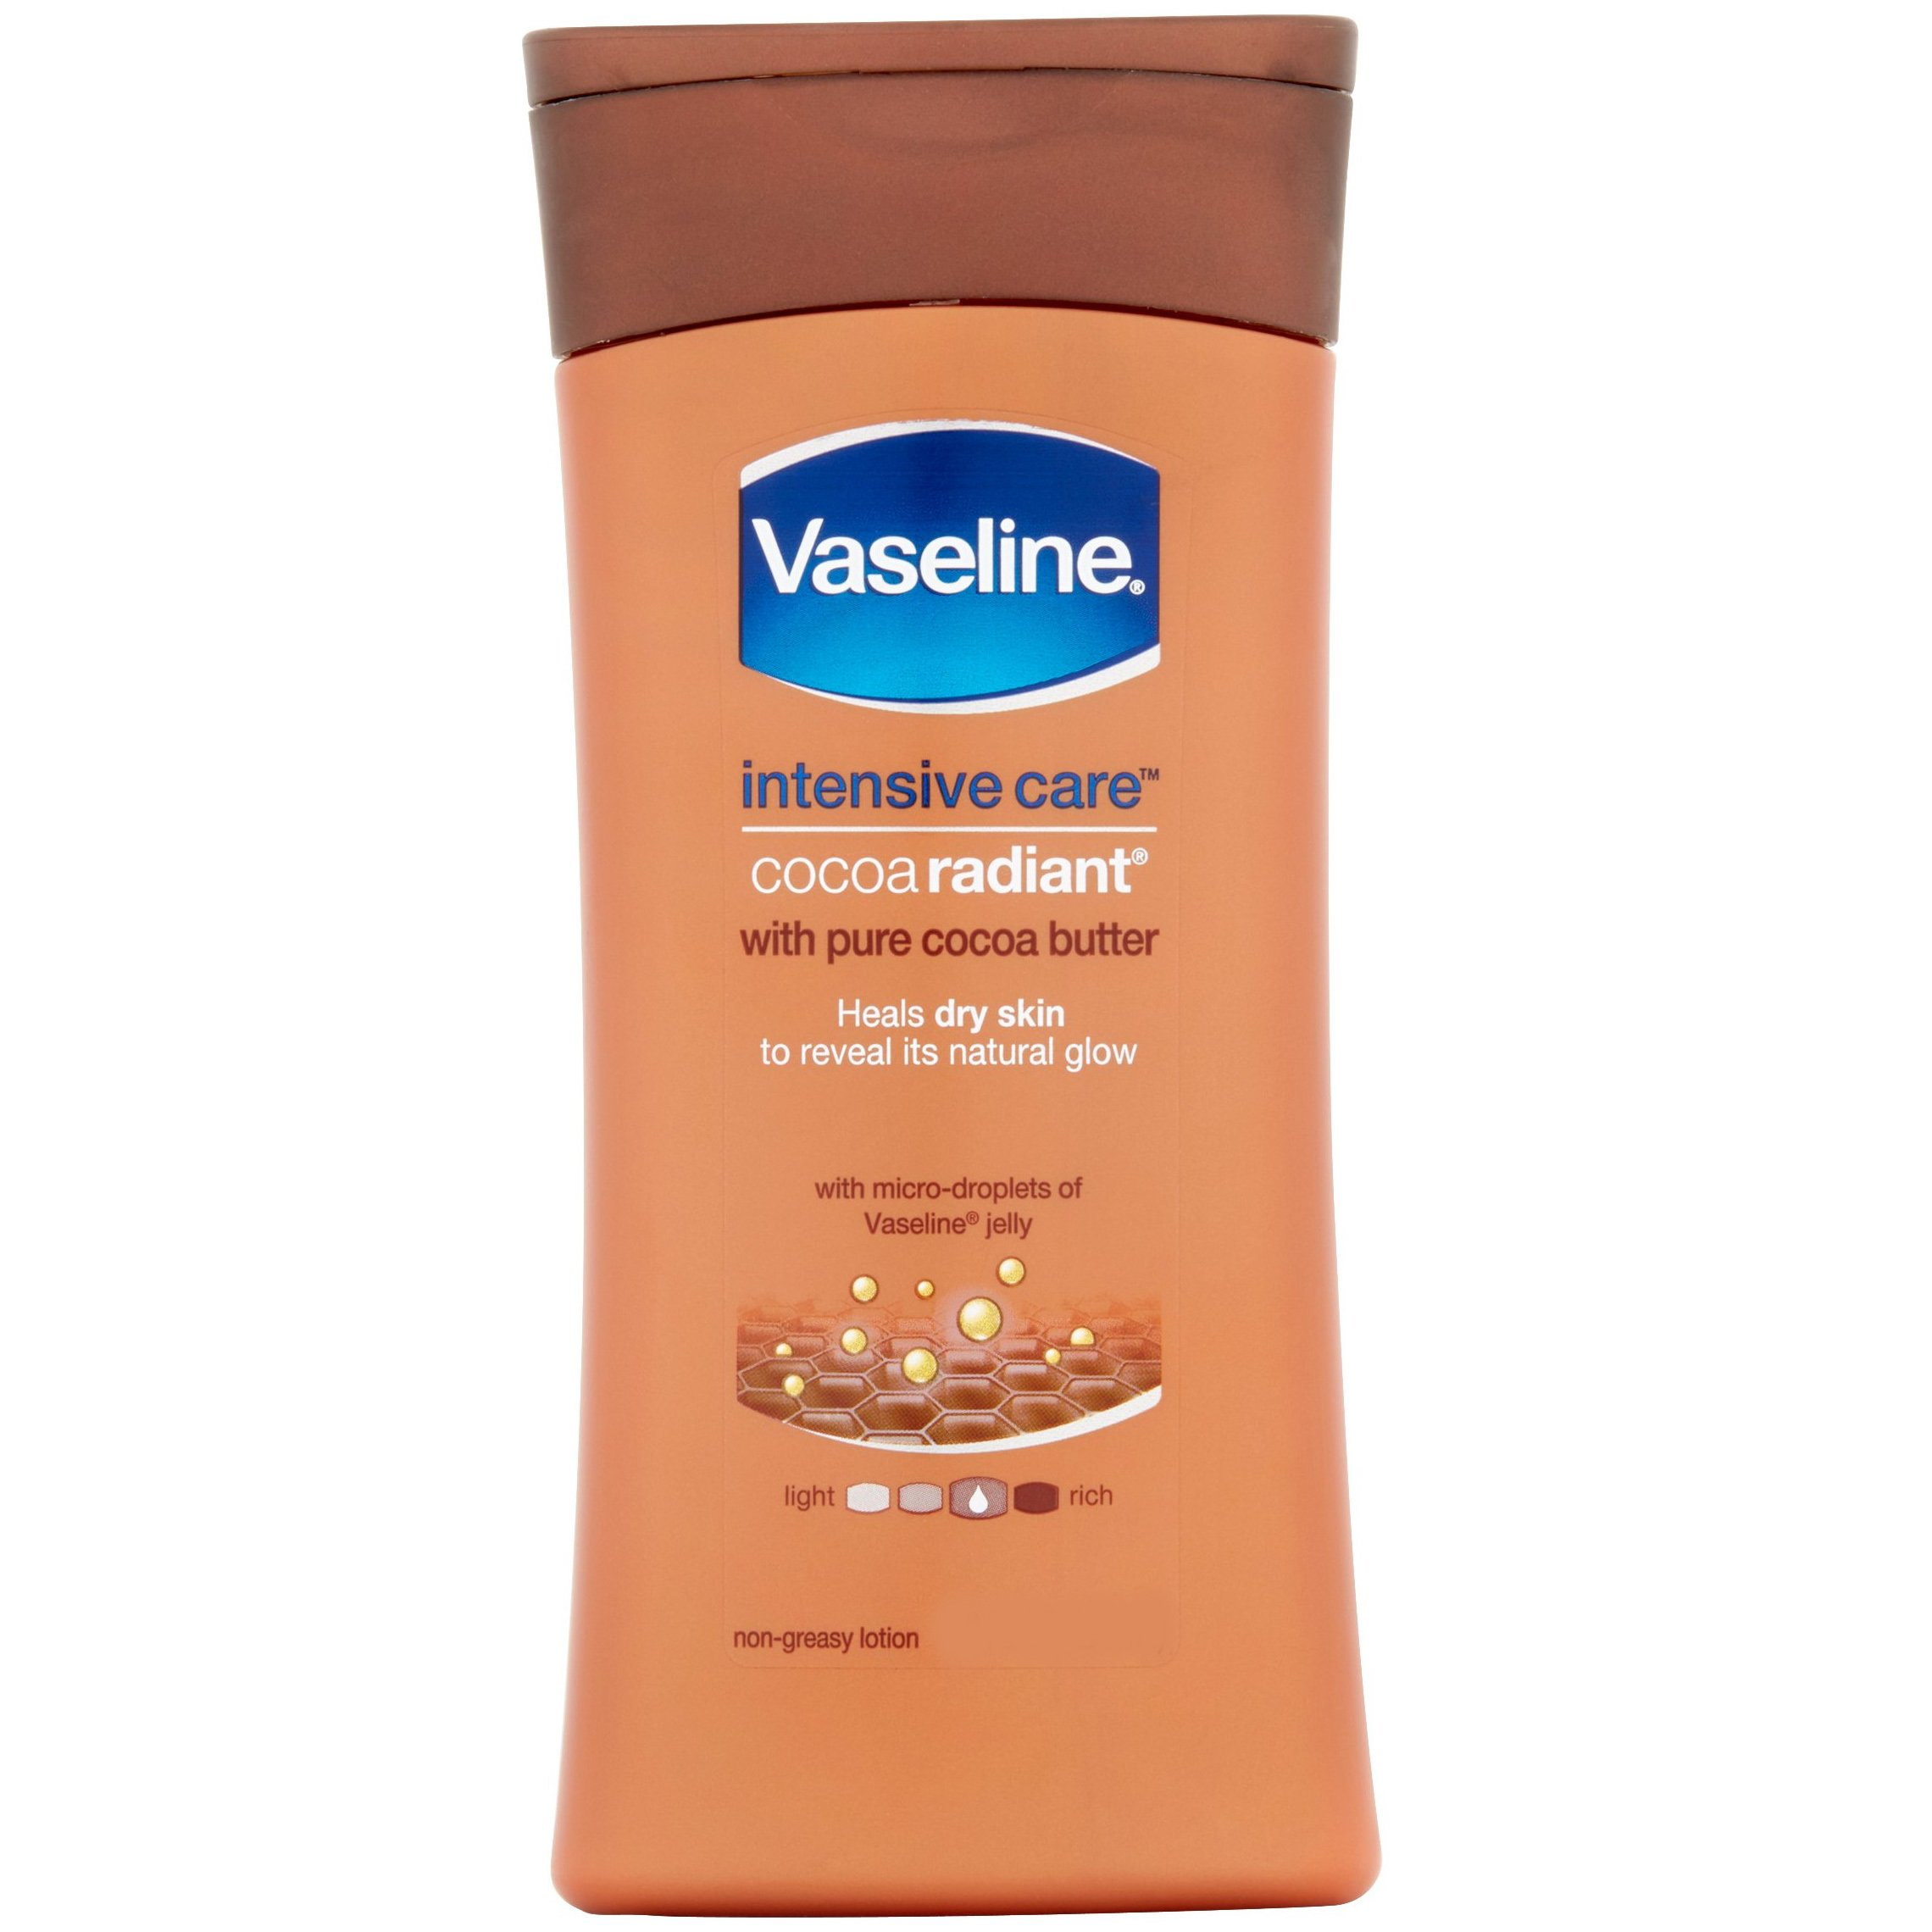 Vaseline Intensive Care Cocoa Radiant Lotion Θρεπτική Λοσιόν Σώματος με Βούτυρο Καρύδας 200ml